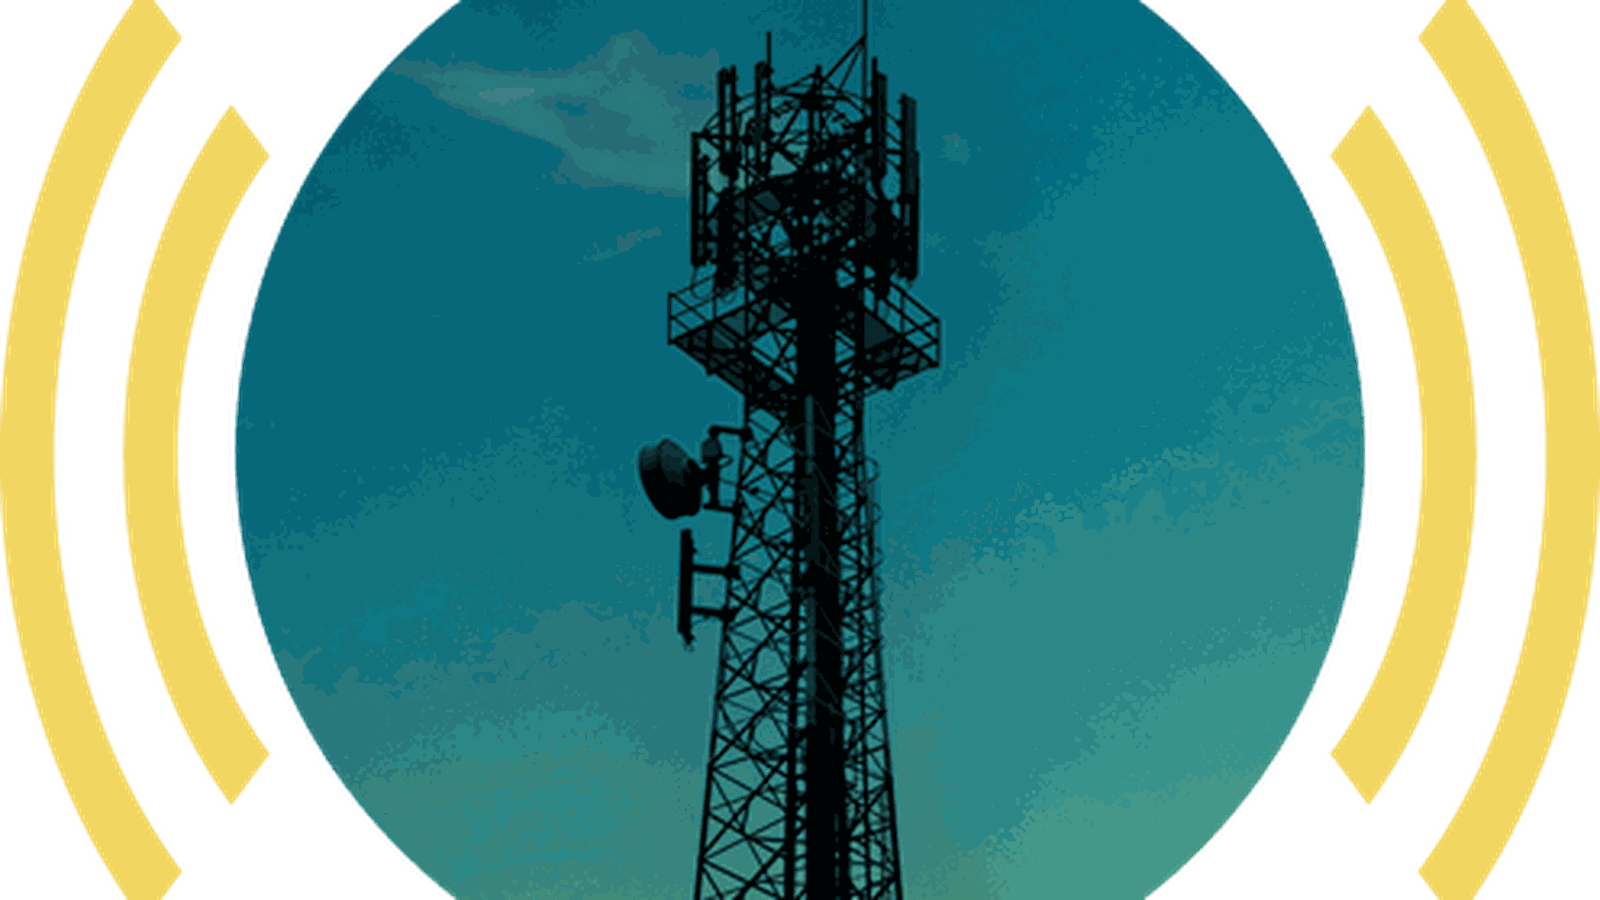 Sprint Keeps Wimax Network Up To Comply With Court Order Deactivates Most Users